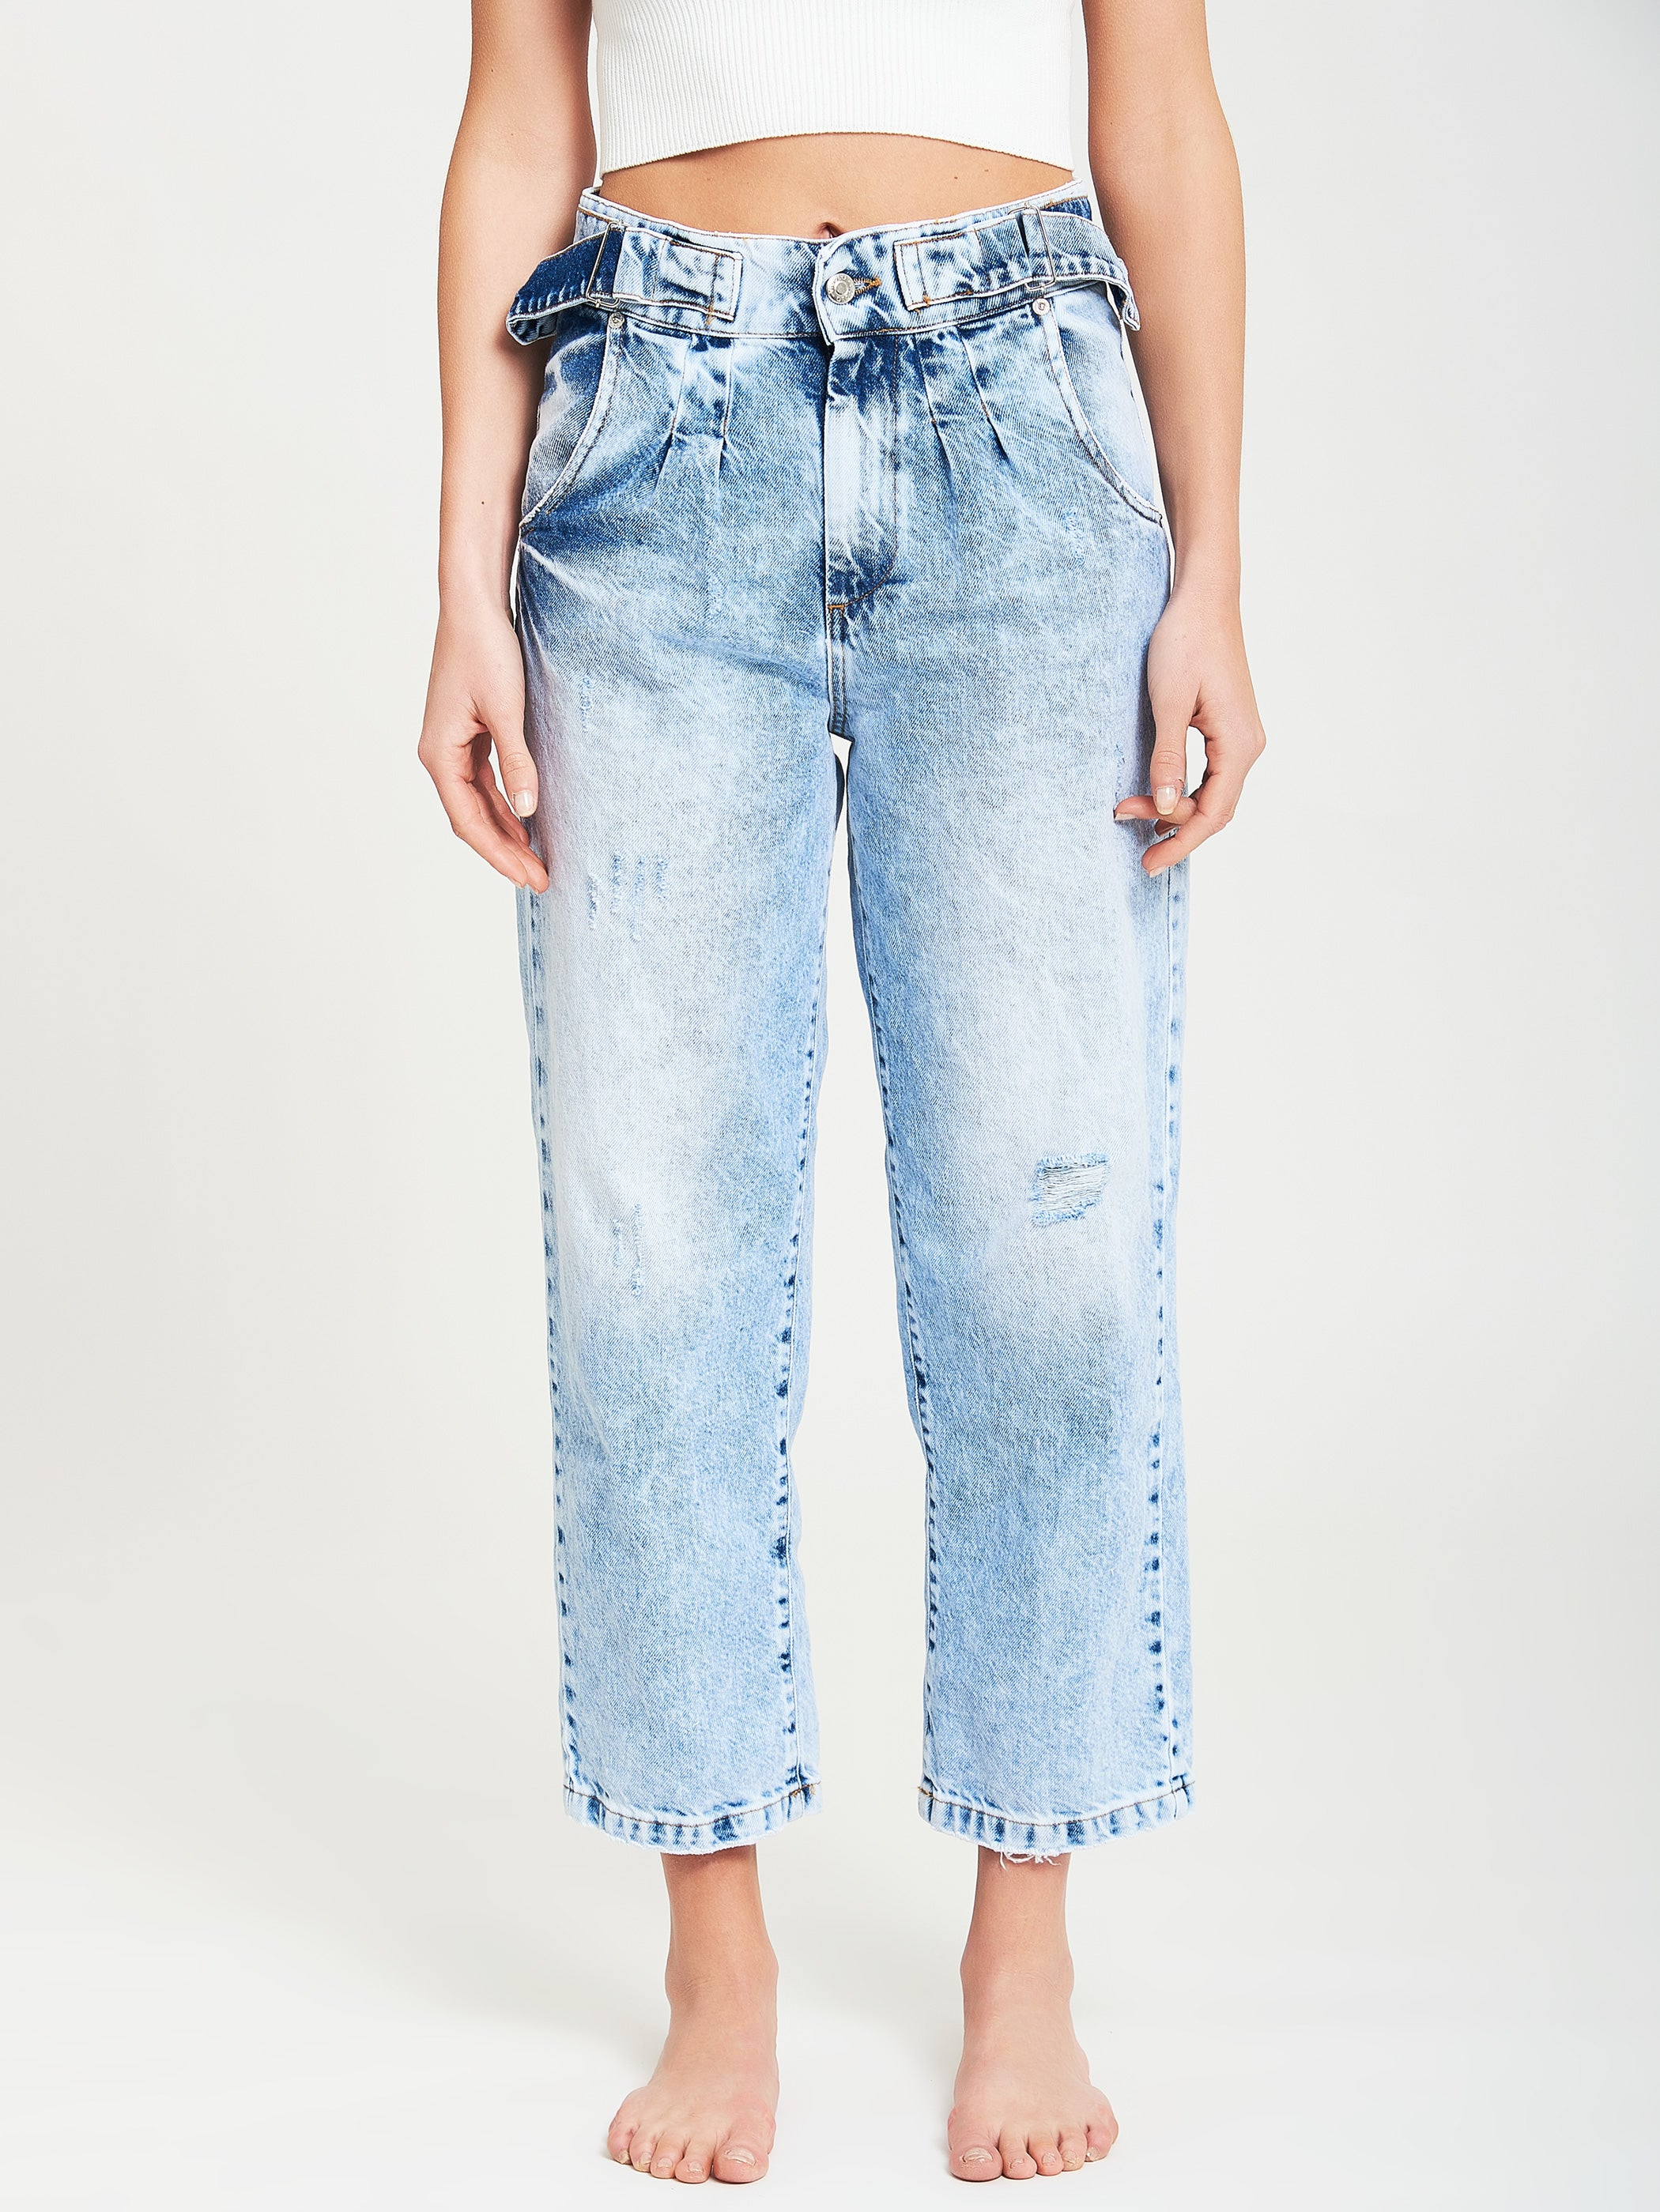 Relaxed jeans with appliqués